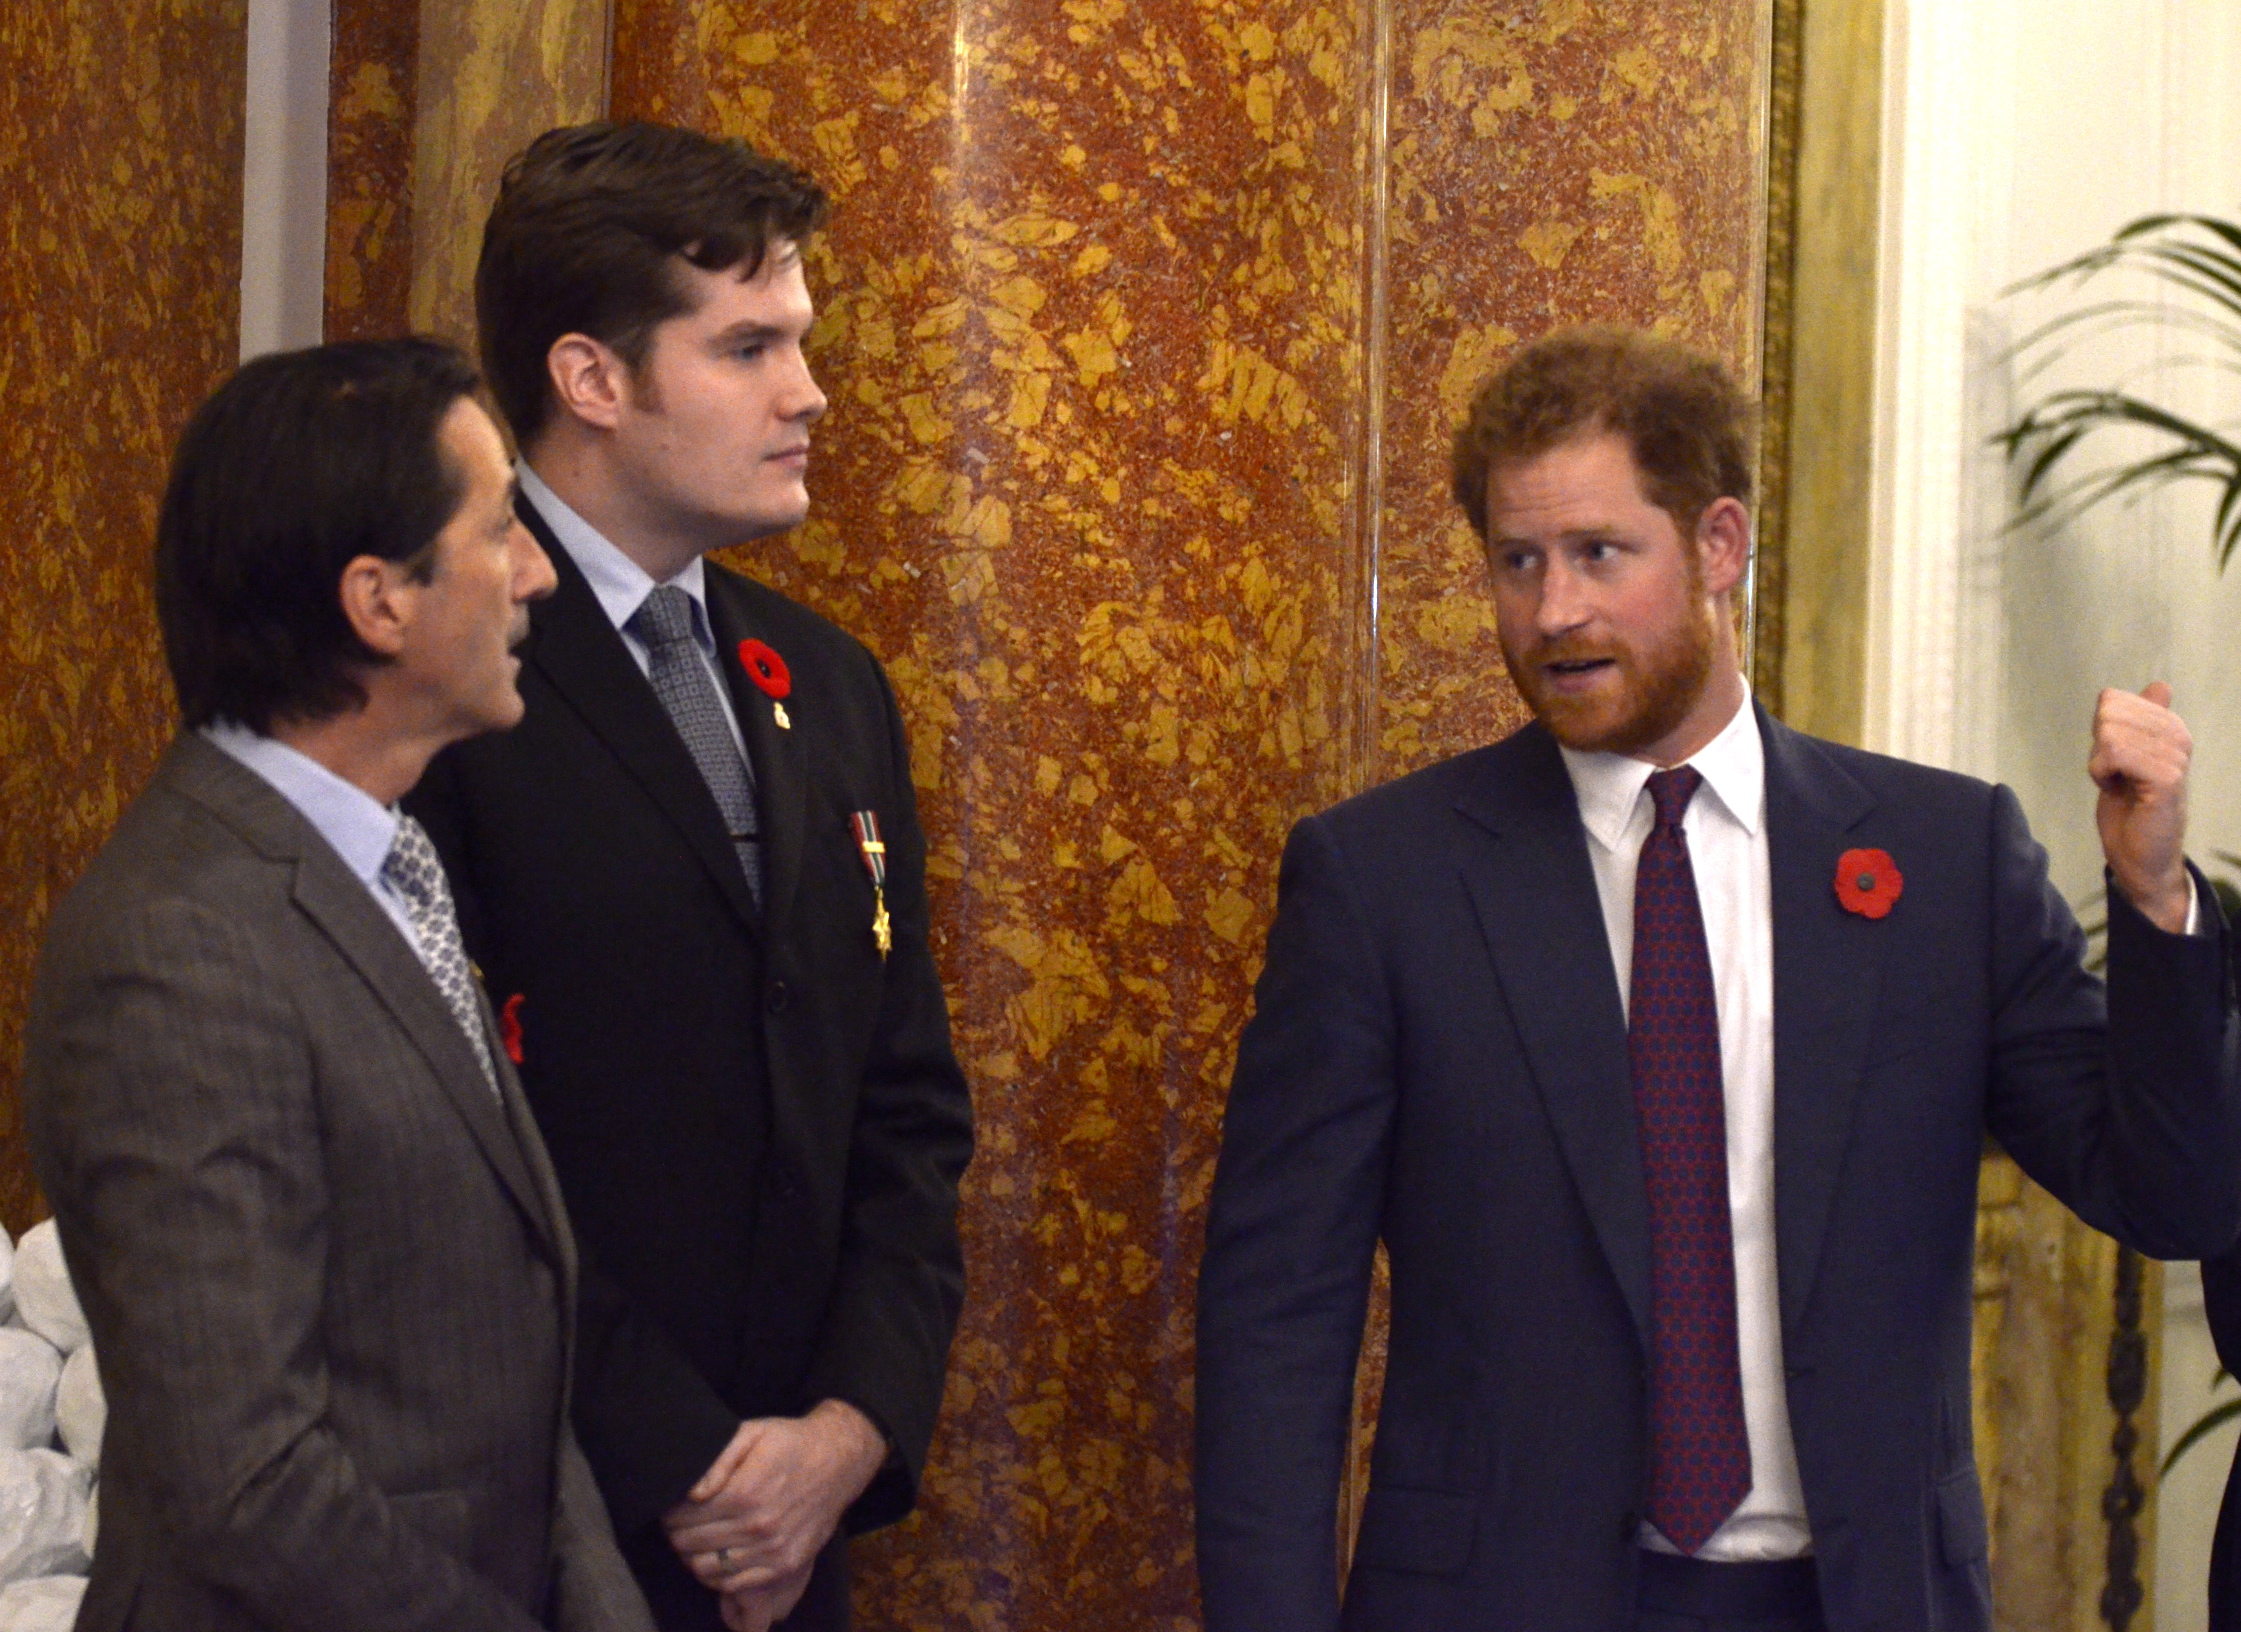 Discussion between Foster and Prince Harry about the images portrayed in the mural